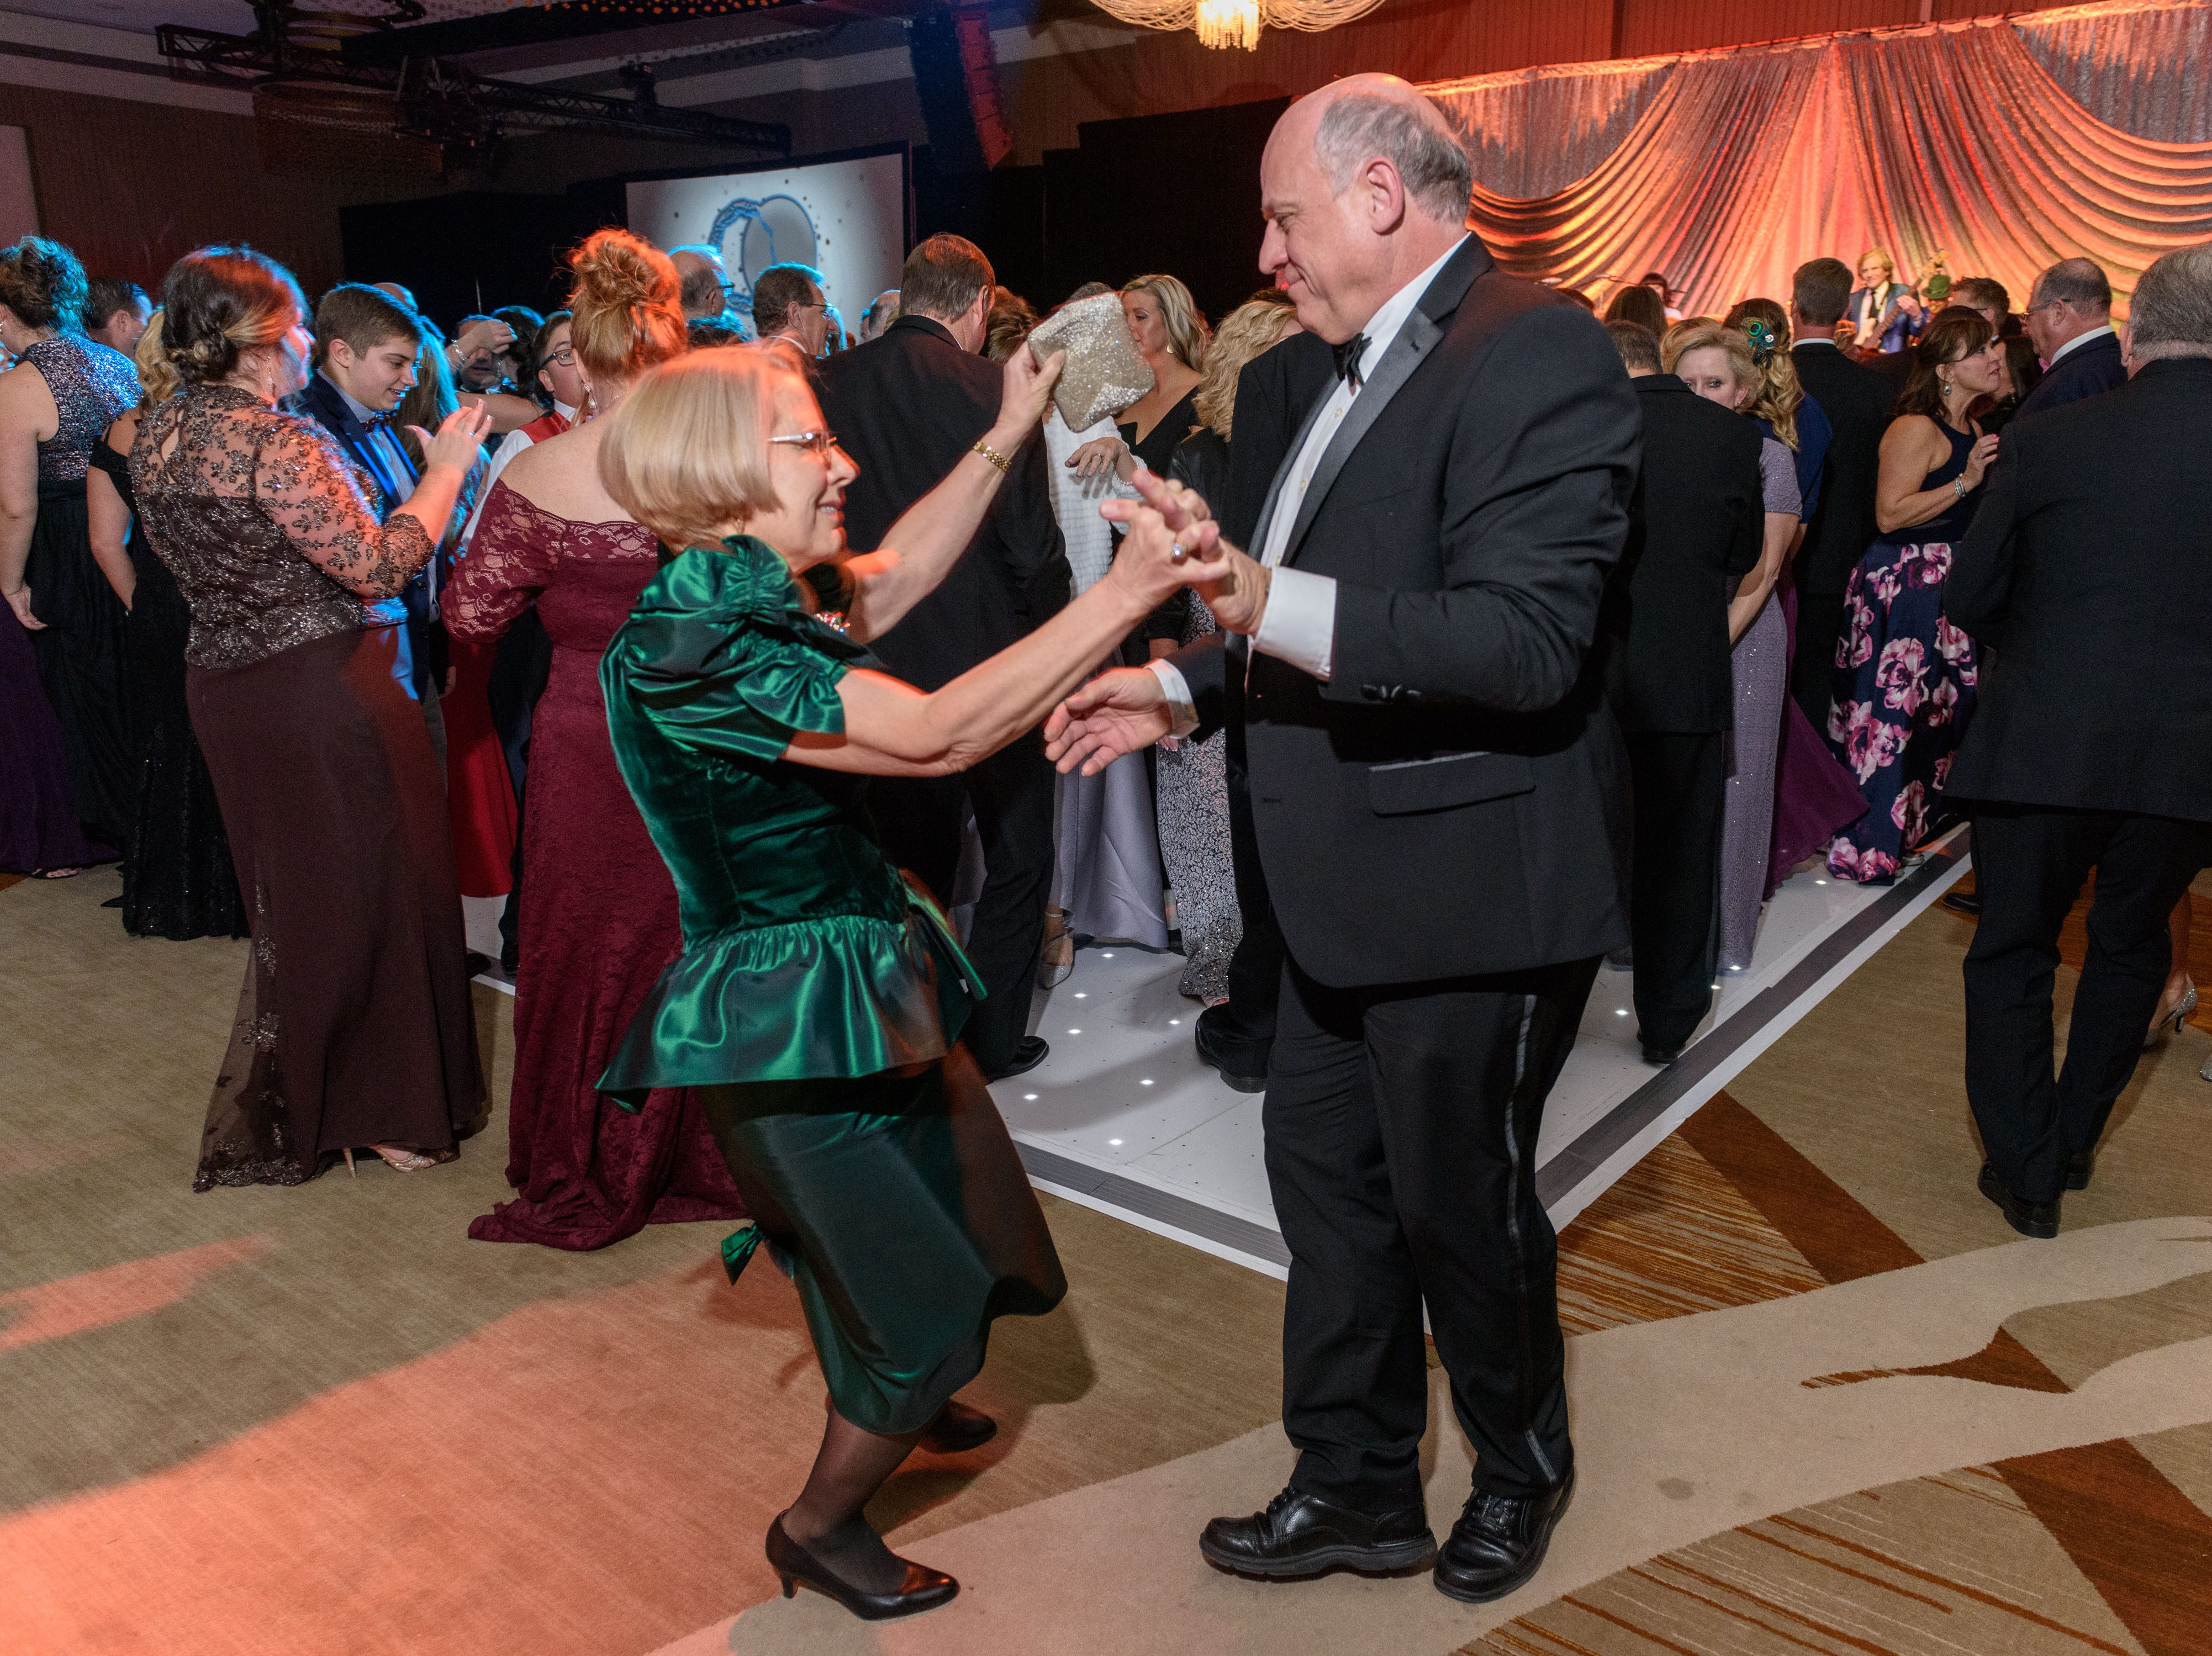 Tom and Jean Vaughn dance to the Endless Summer Band at the Snow Ball Gala at the Omni Hotel, a benefit for the Jennifer Lawrence Cardiac Intensive Care Unit (CICU) at Norton ChildrenÕs Hospital. Nov. 17, 2018